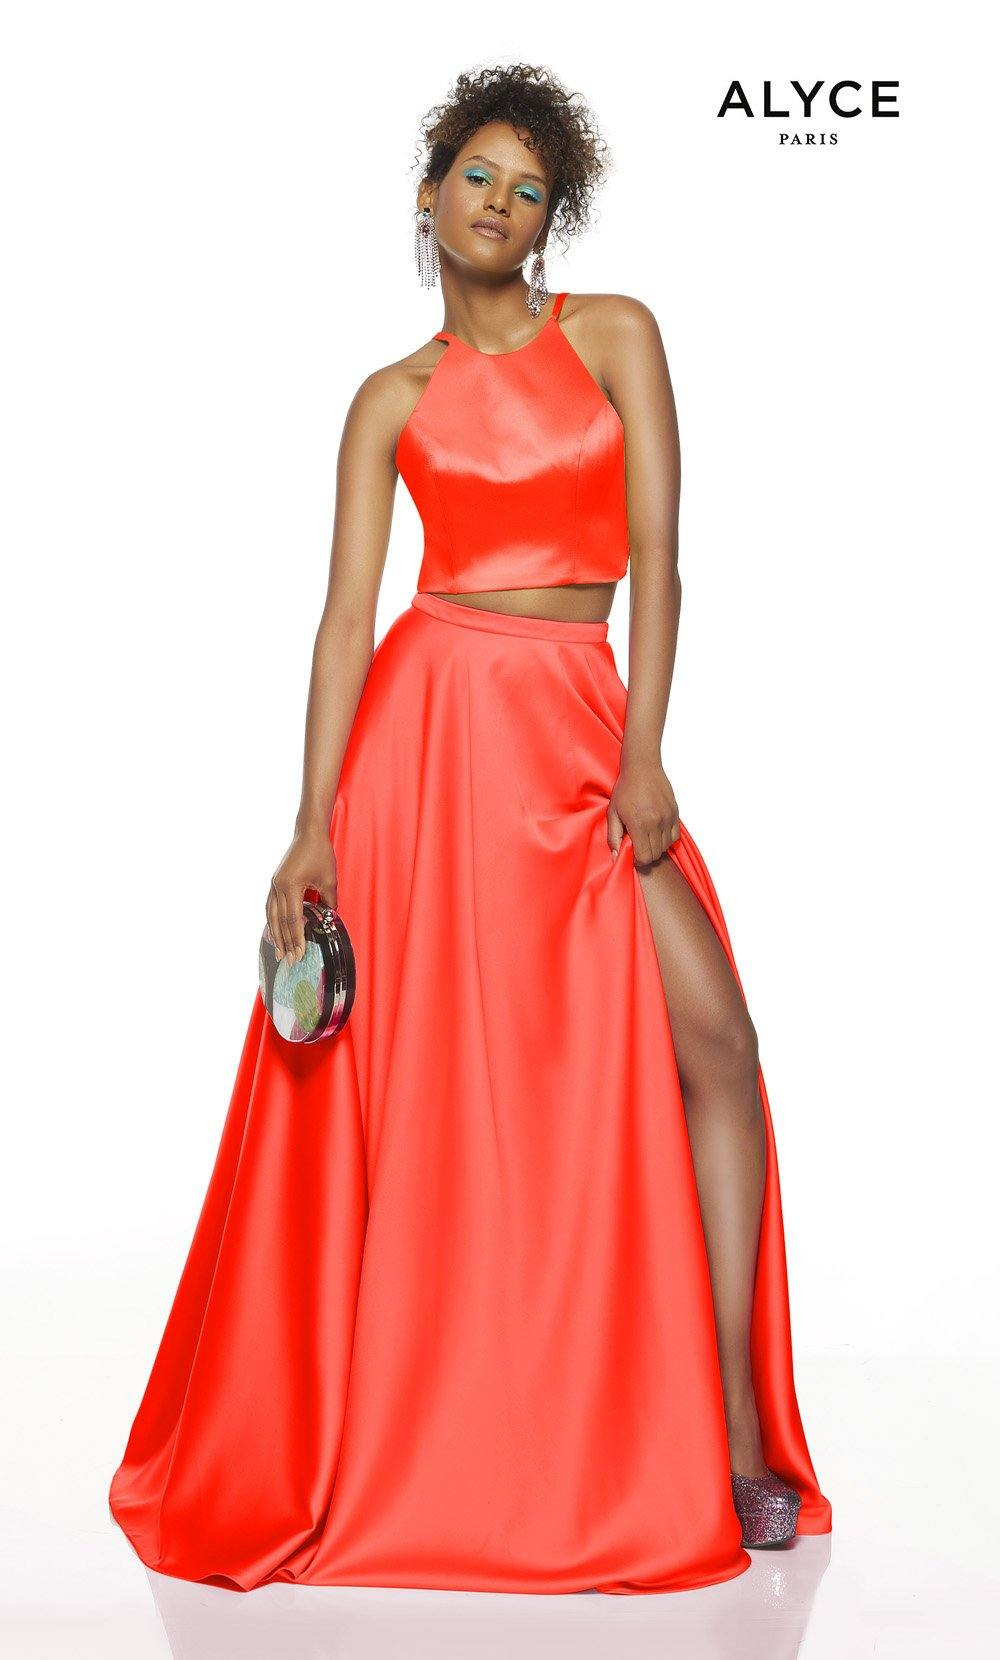 Tiger Lily Solid two piece prom dress with a Yellow halter top and a Pink skirt